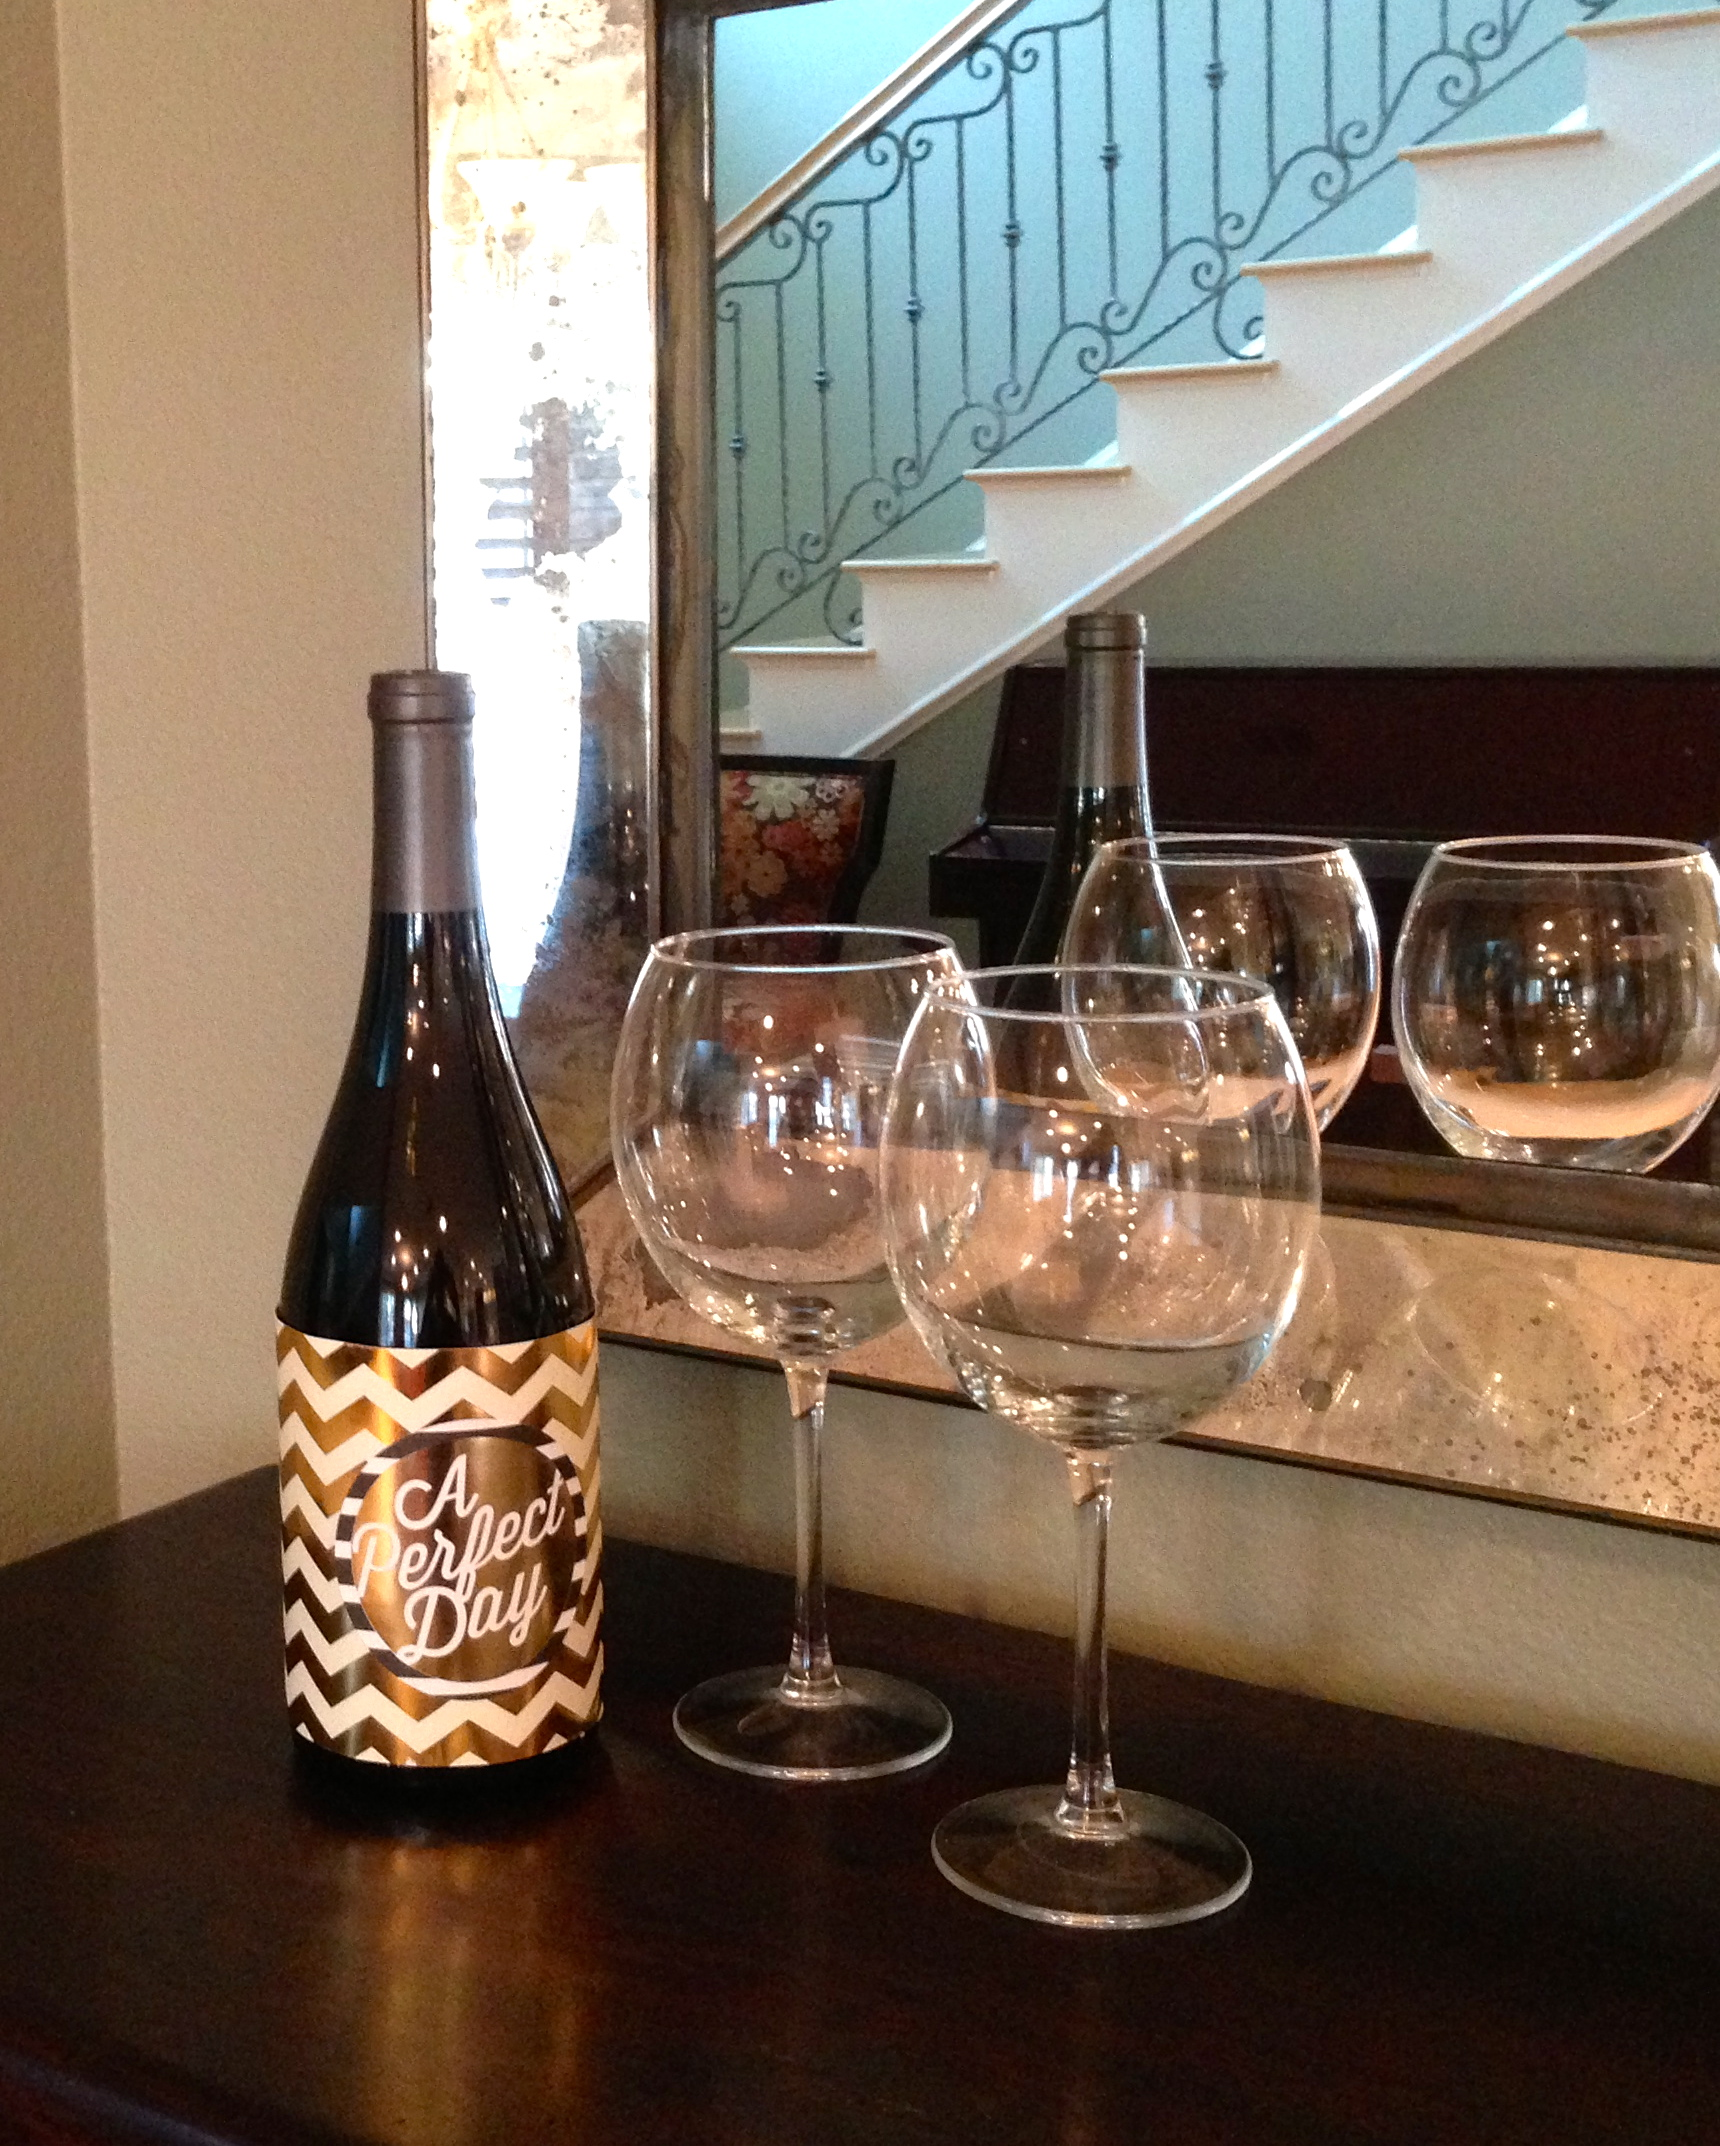 Wine bottle decor with POCKET PAGES. Simple wine bottle decoration as a gift on the mambi blog.